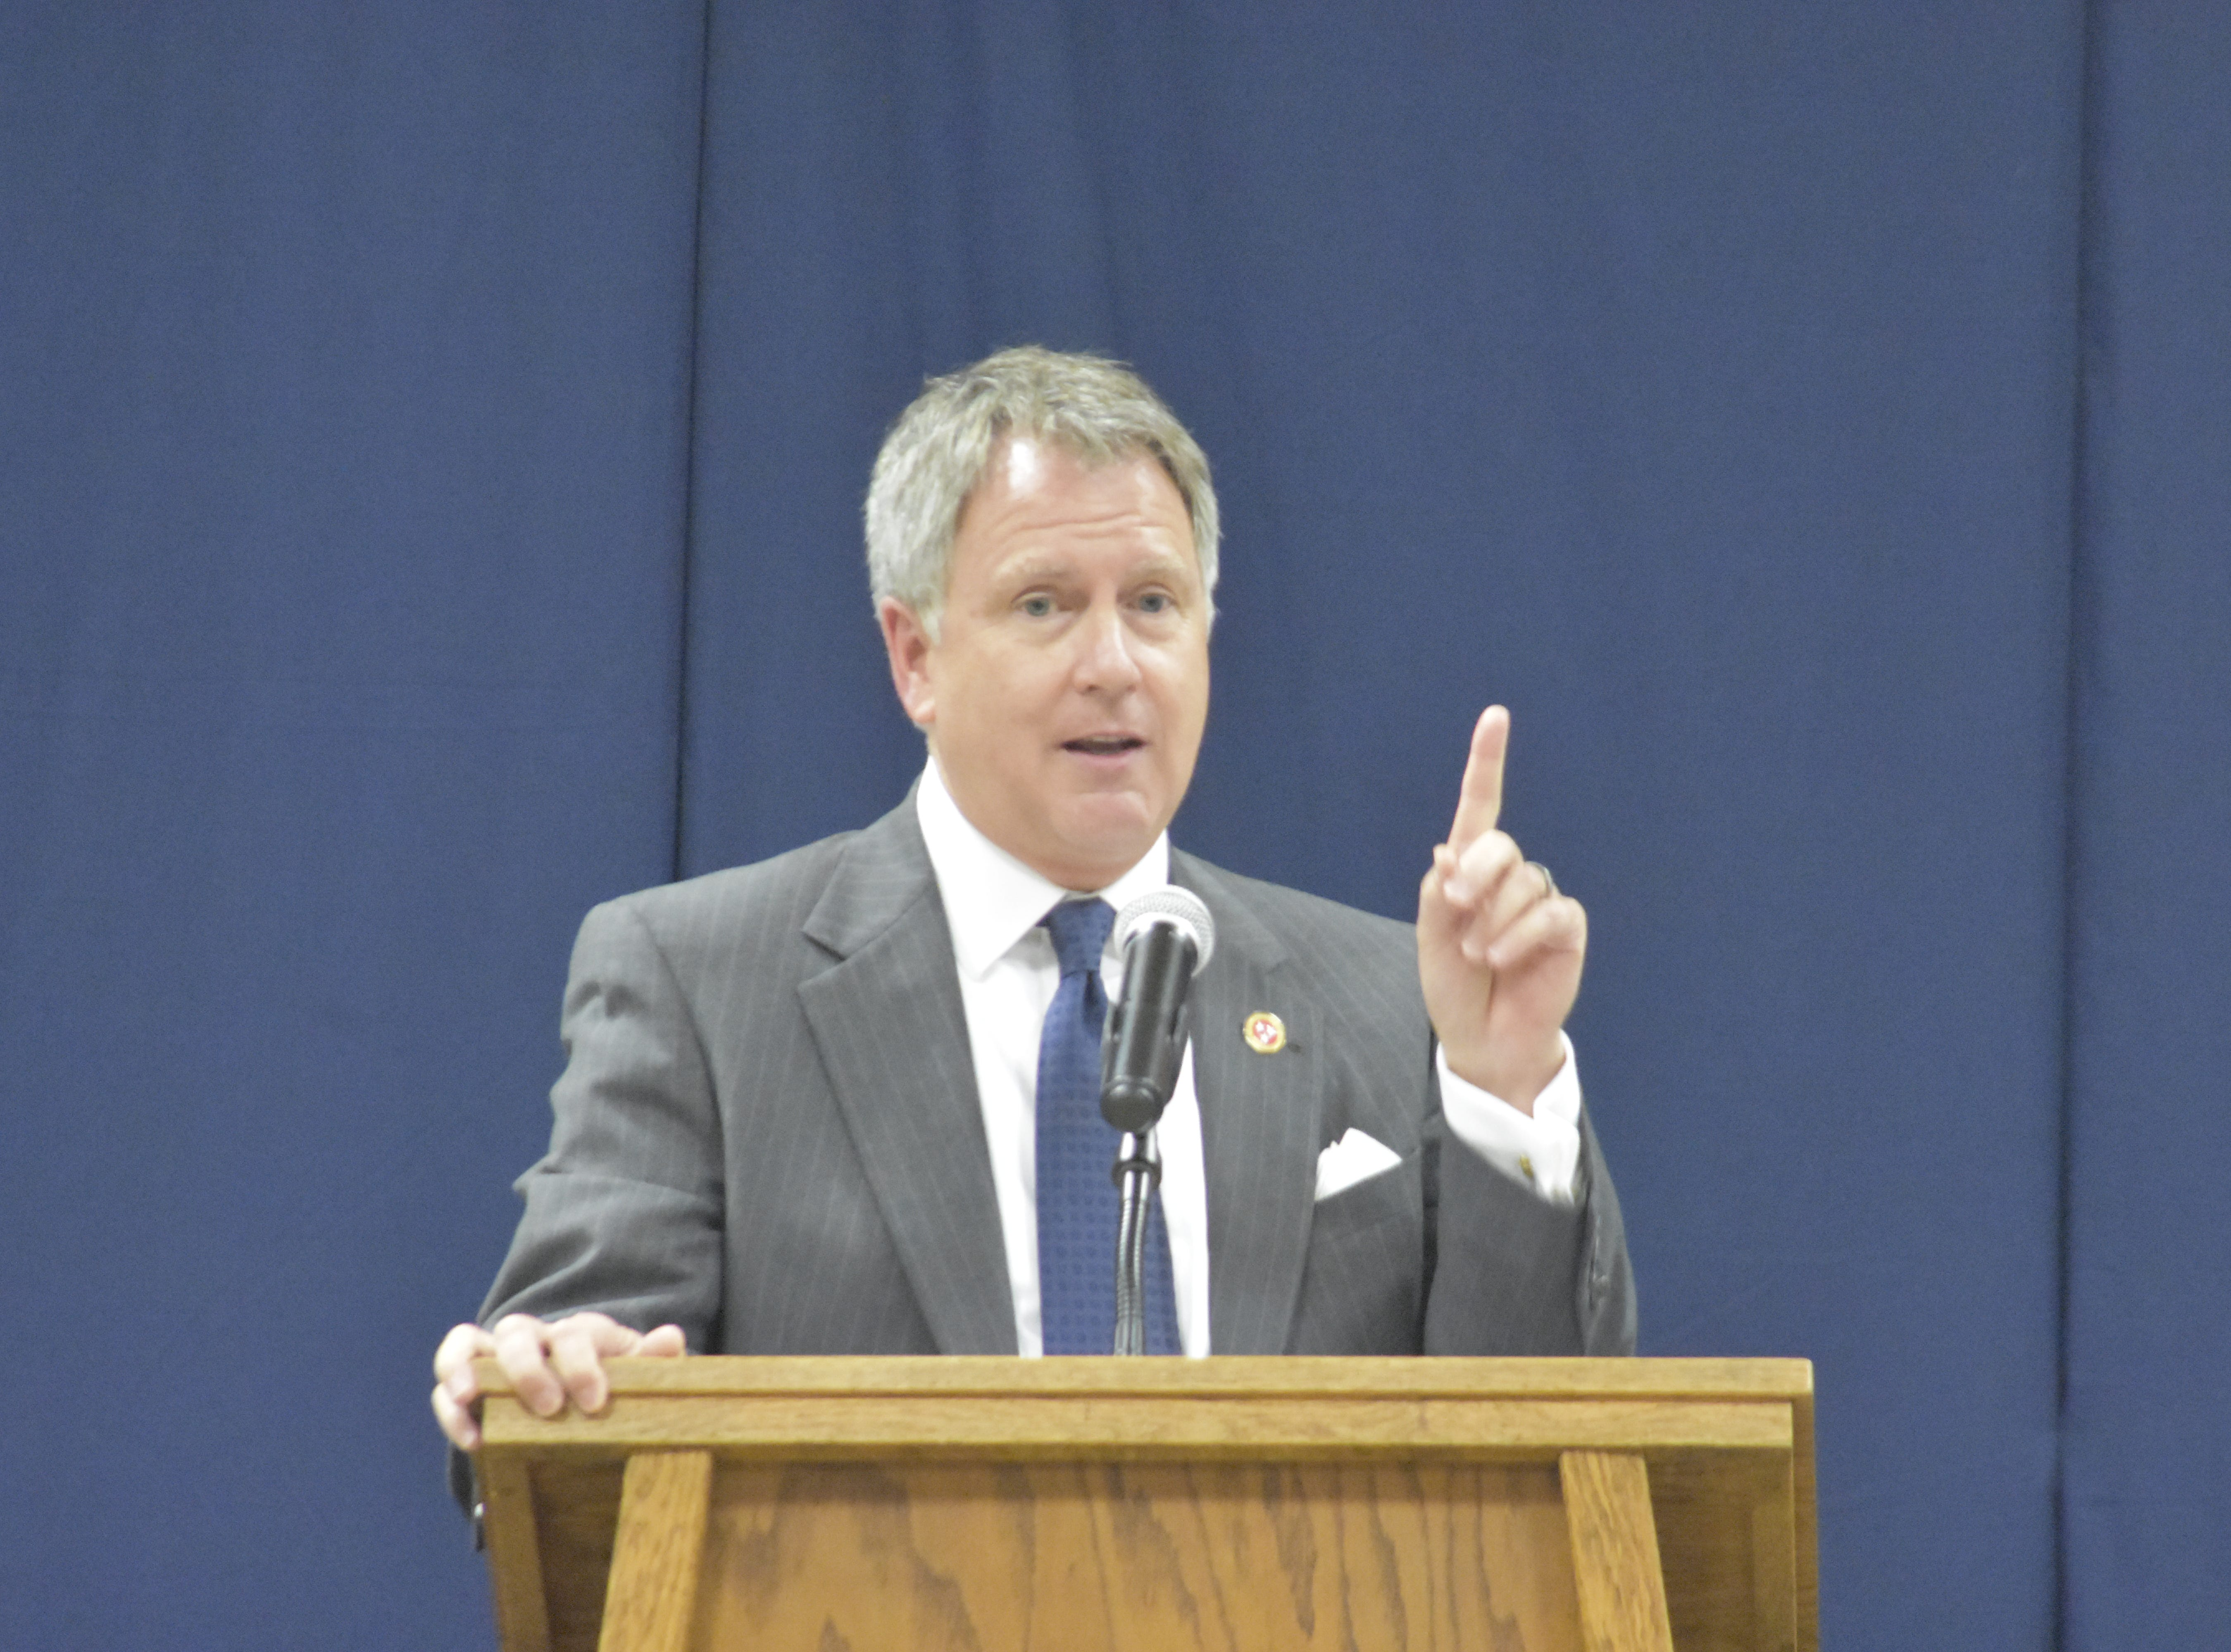 Sen. Kerry Roberts gives a speech at Pleasant View Christian School's graduation on Monday, May 13.